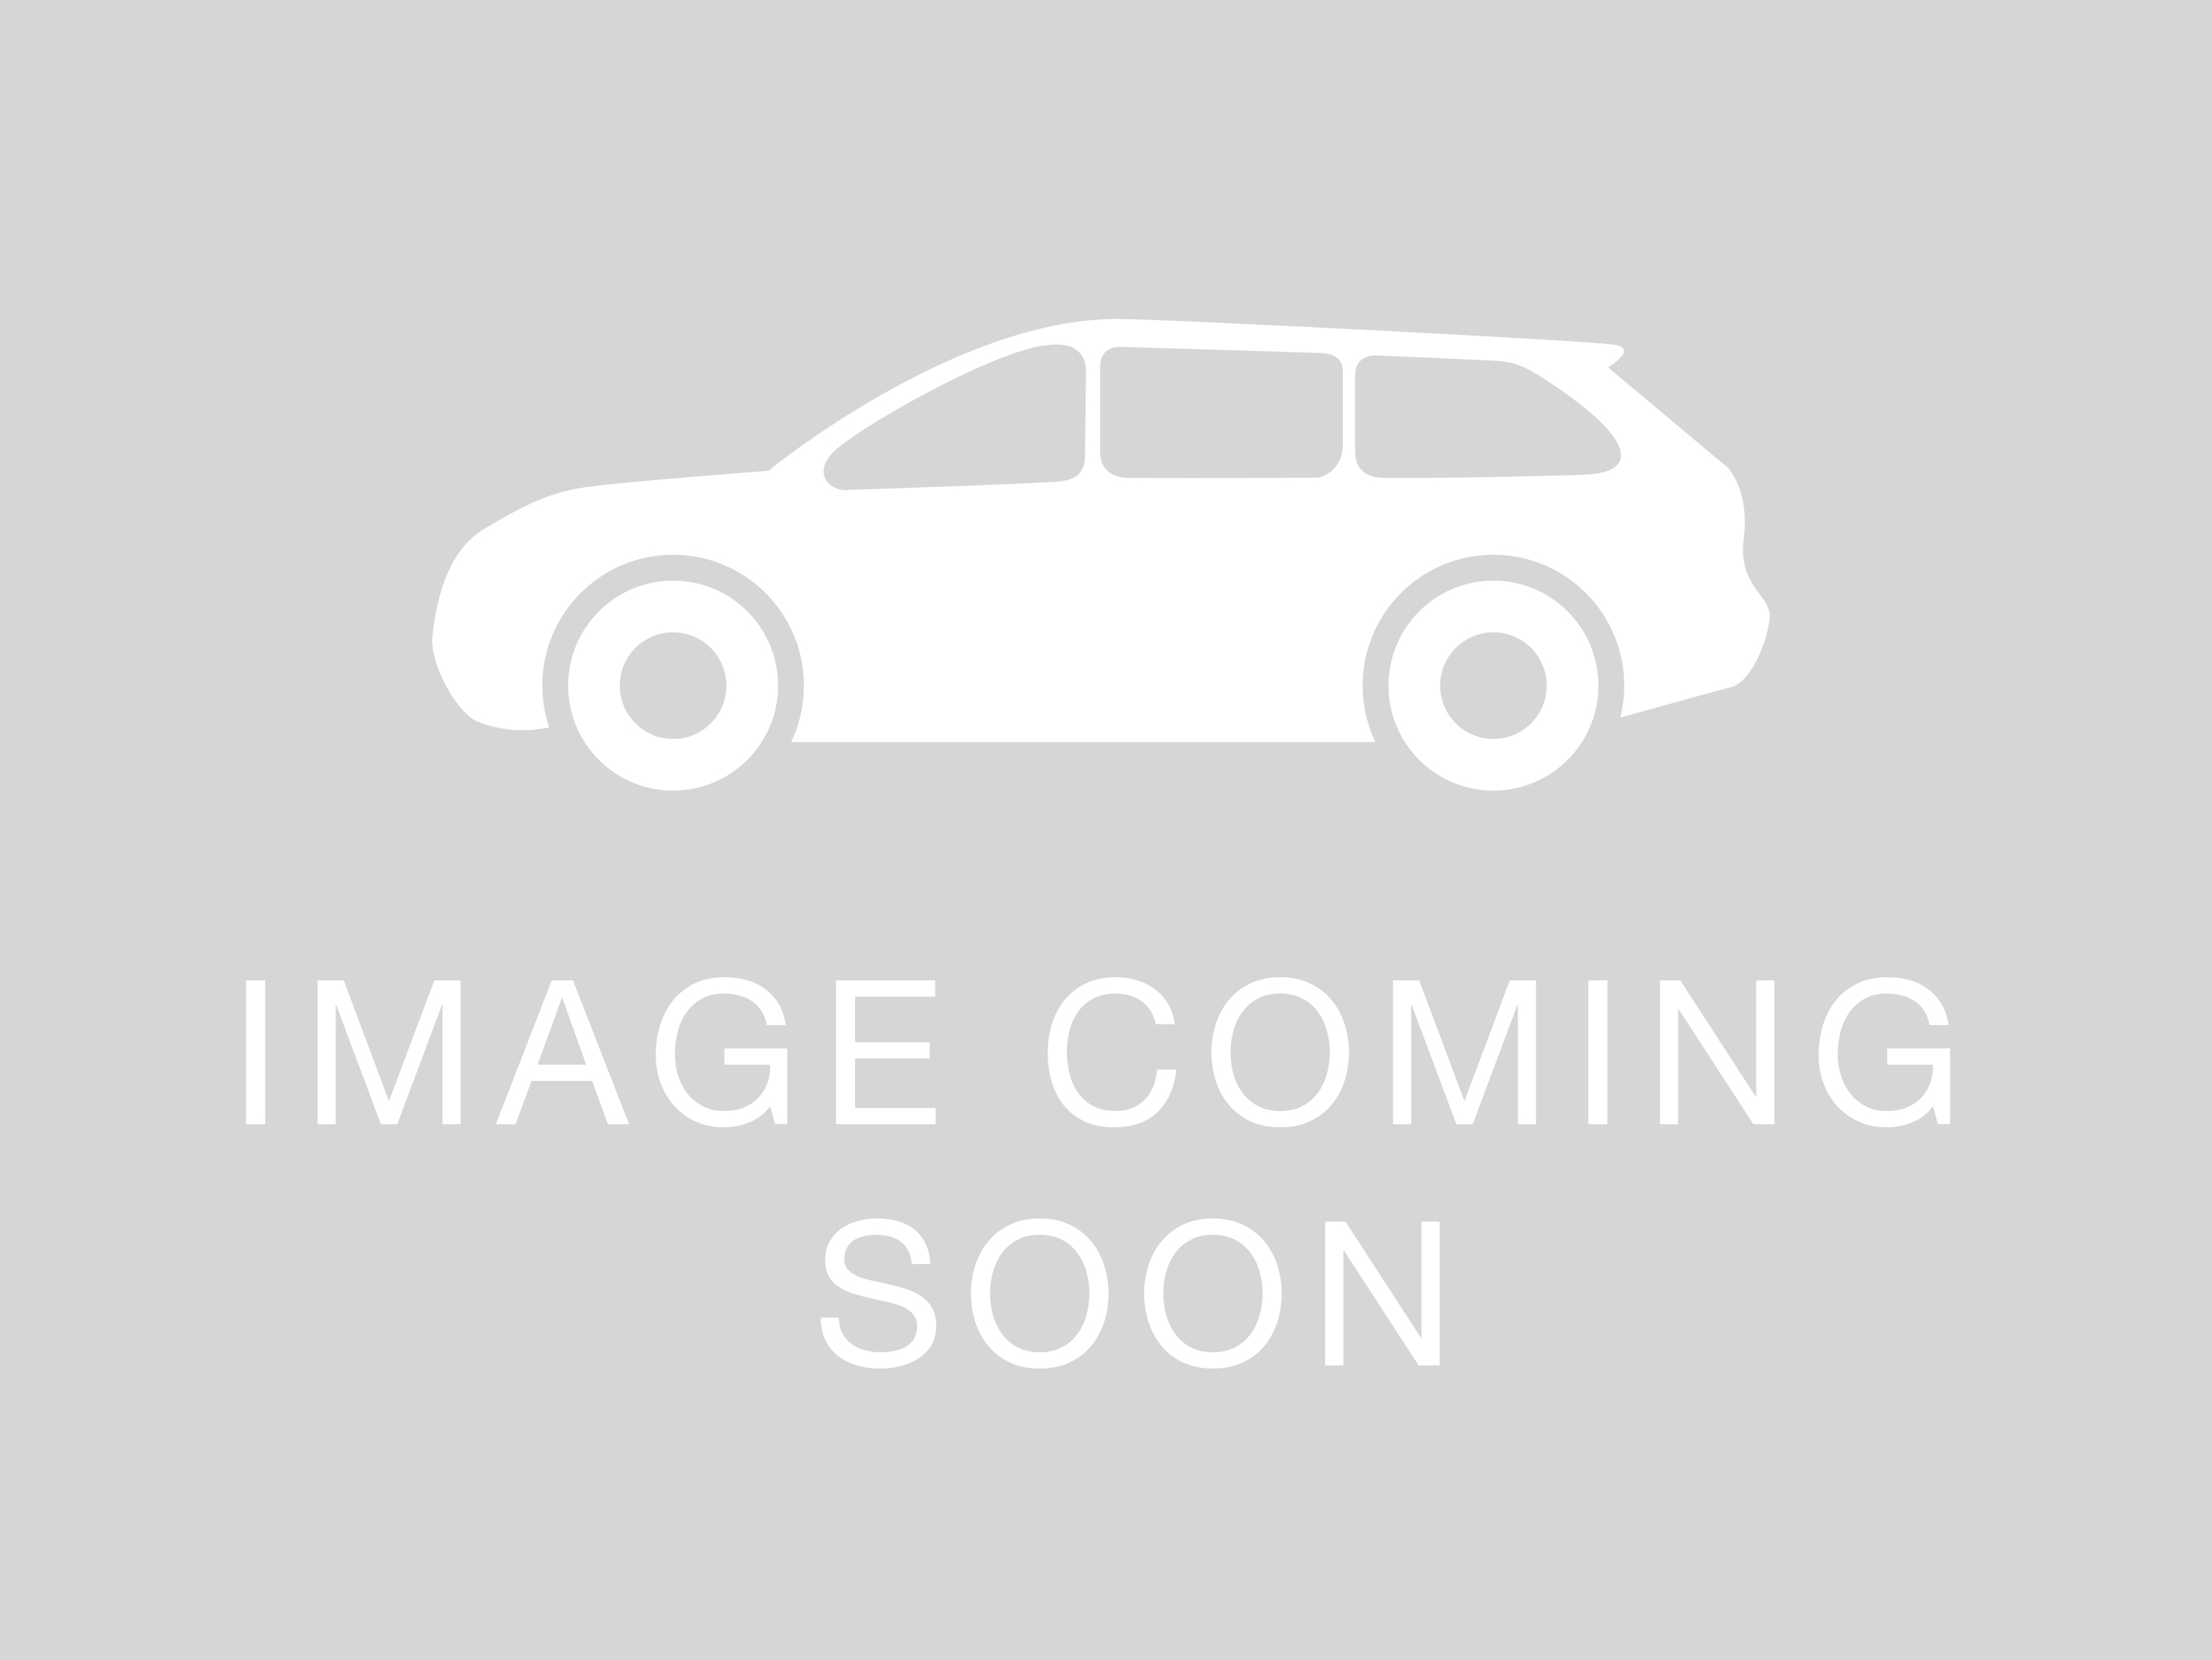 Bowater Used Cars